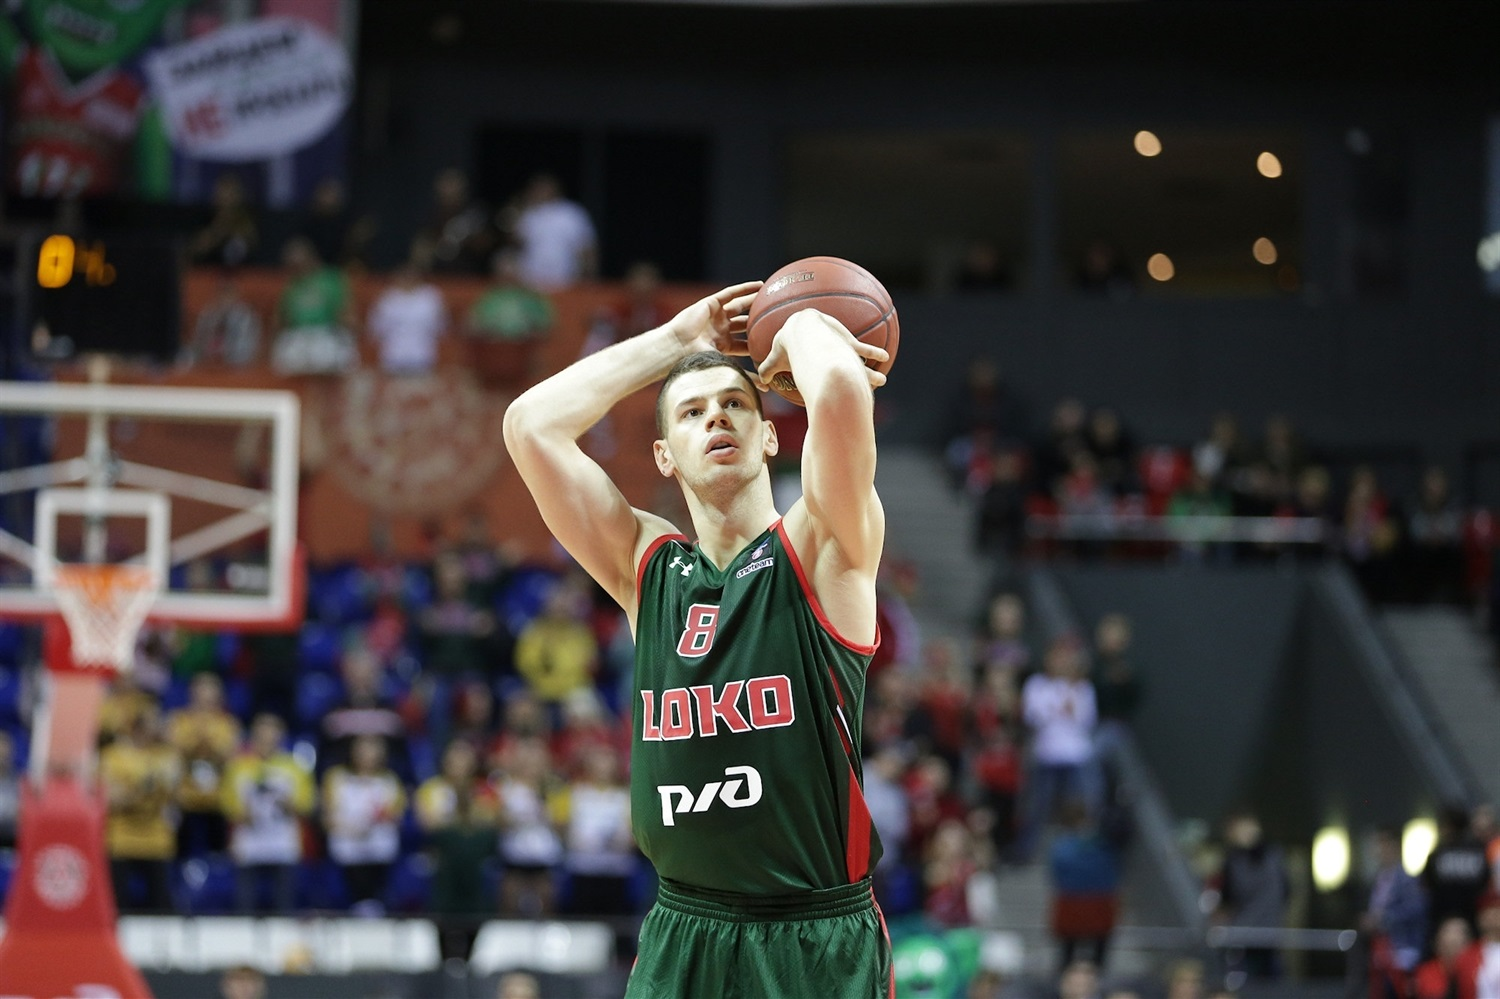 Dragan Apic - Lokomotiv Kuban Krasnodar (photo Lokomotiv) - EC18